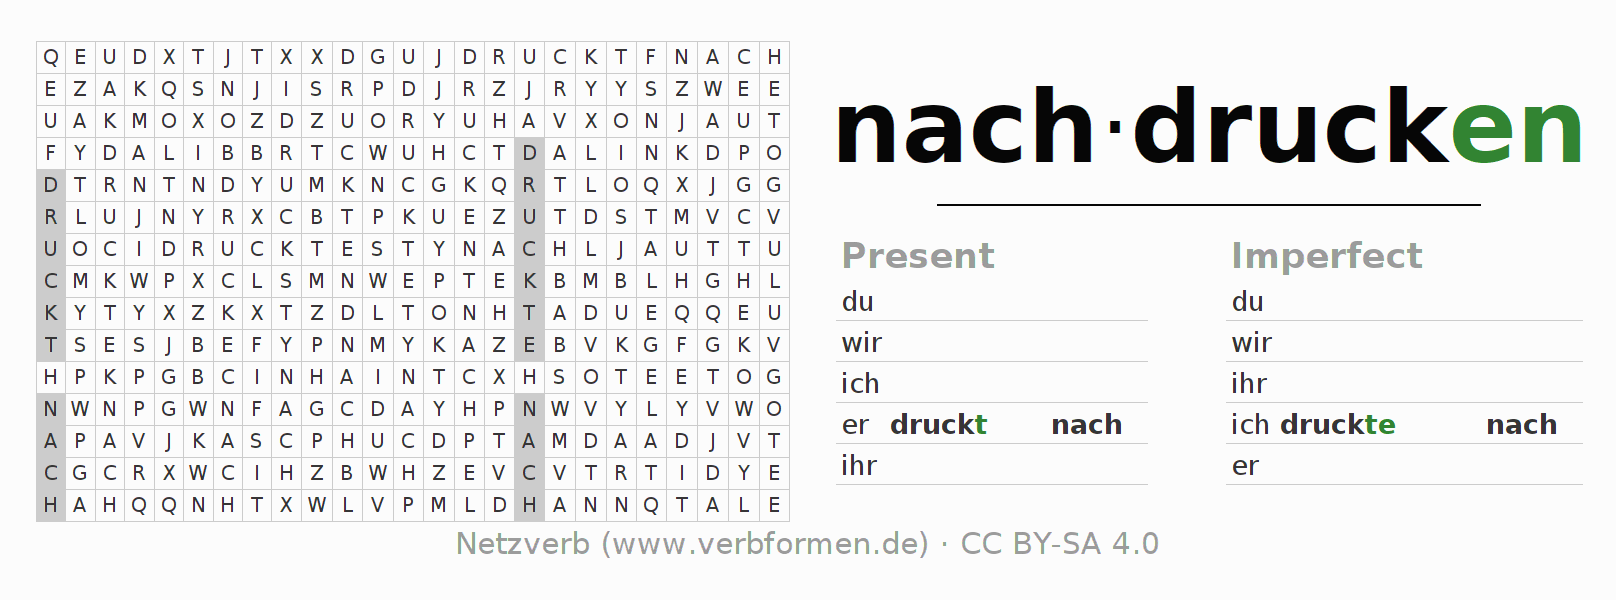 Word search puzzle for the conjugation of the verb nachdrucken